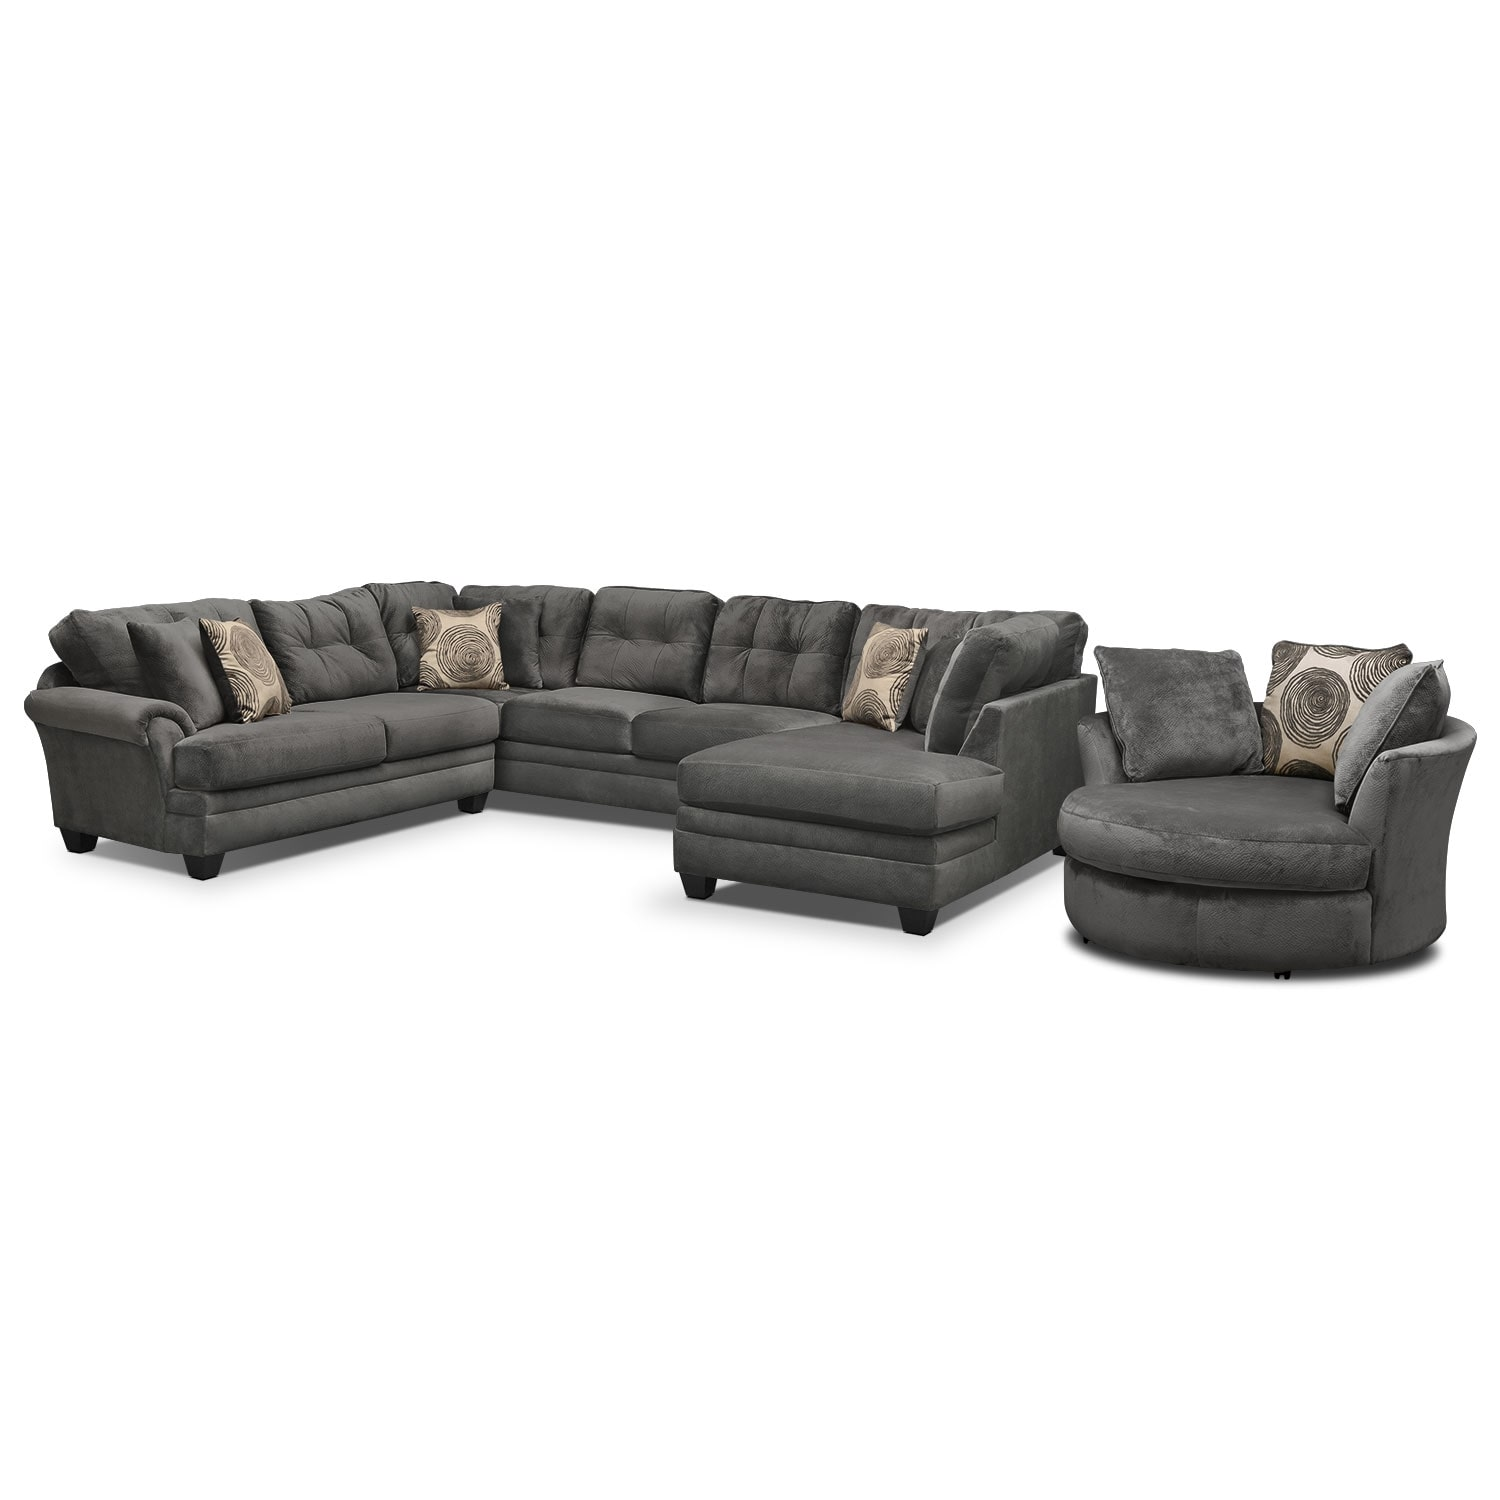 Cordelle 3 Piece Sectional With Right Facing Chaise And Swivel Chair Set    Gray